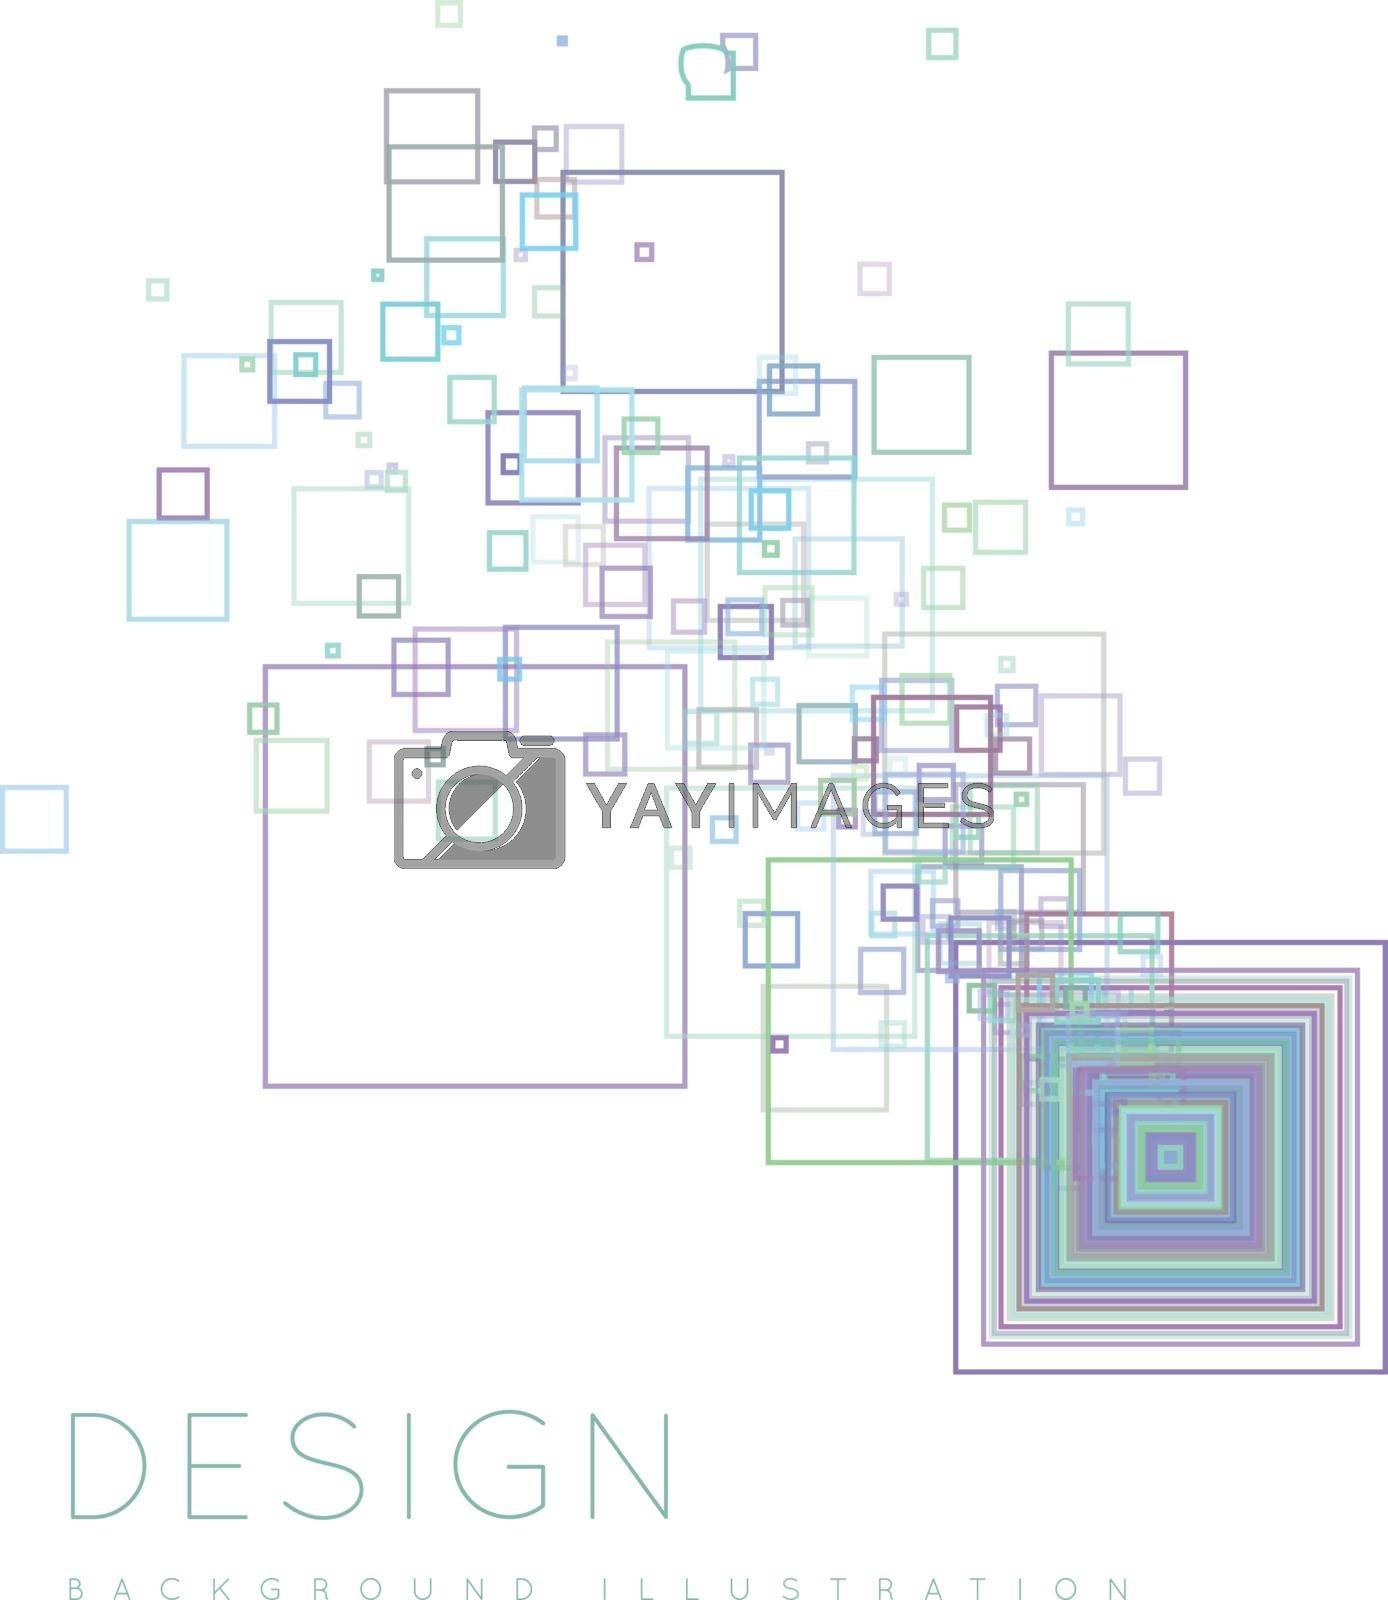 Background of the squares in a modern style. Vector illustration